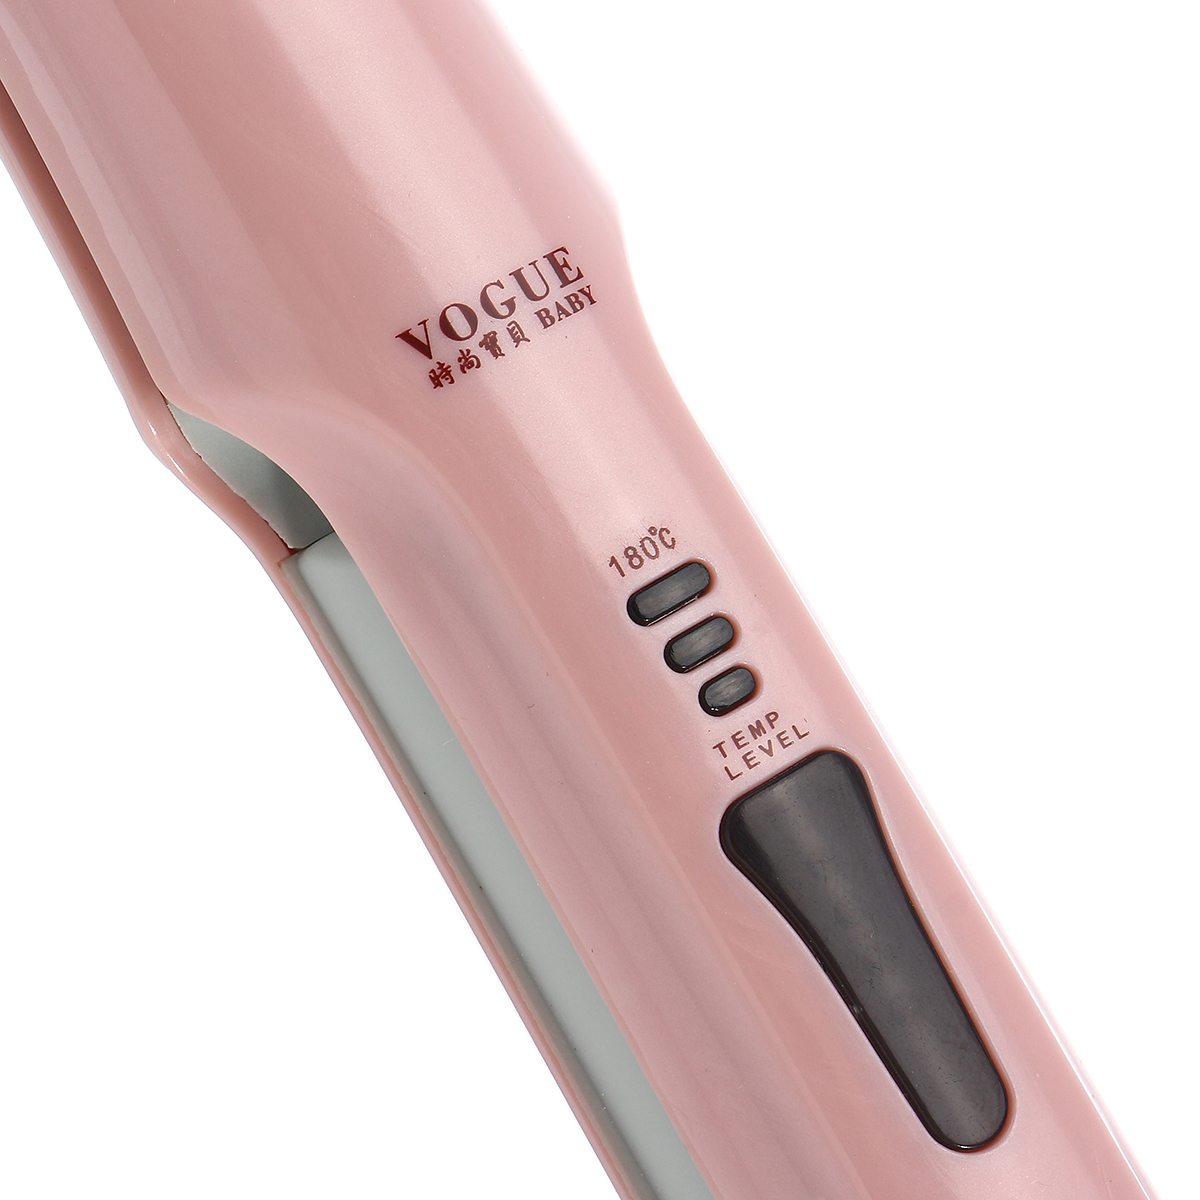 VOGOU 2in1 3D Hair Straightener Curlers Styling Temperature Anion Control Flat Iron Digital